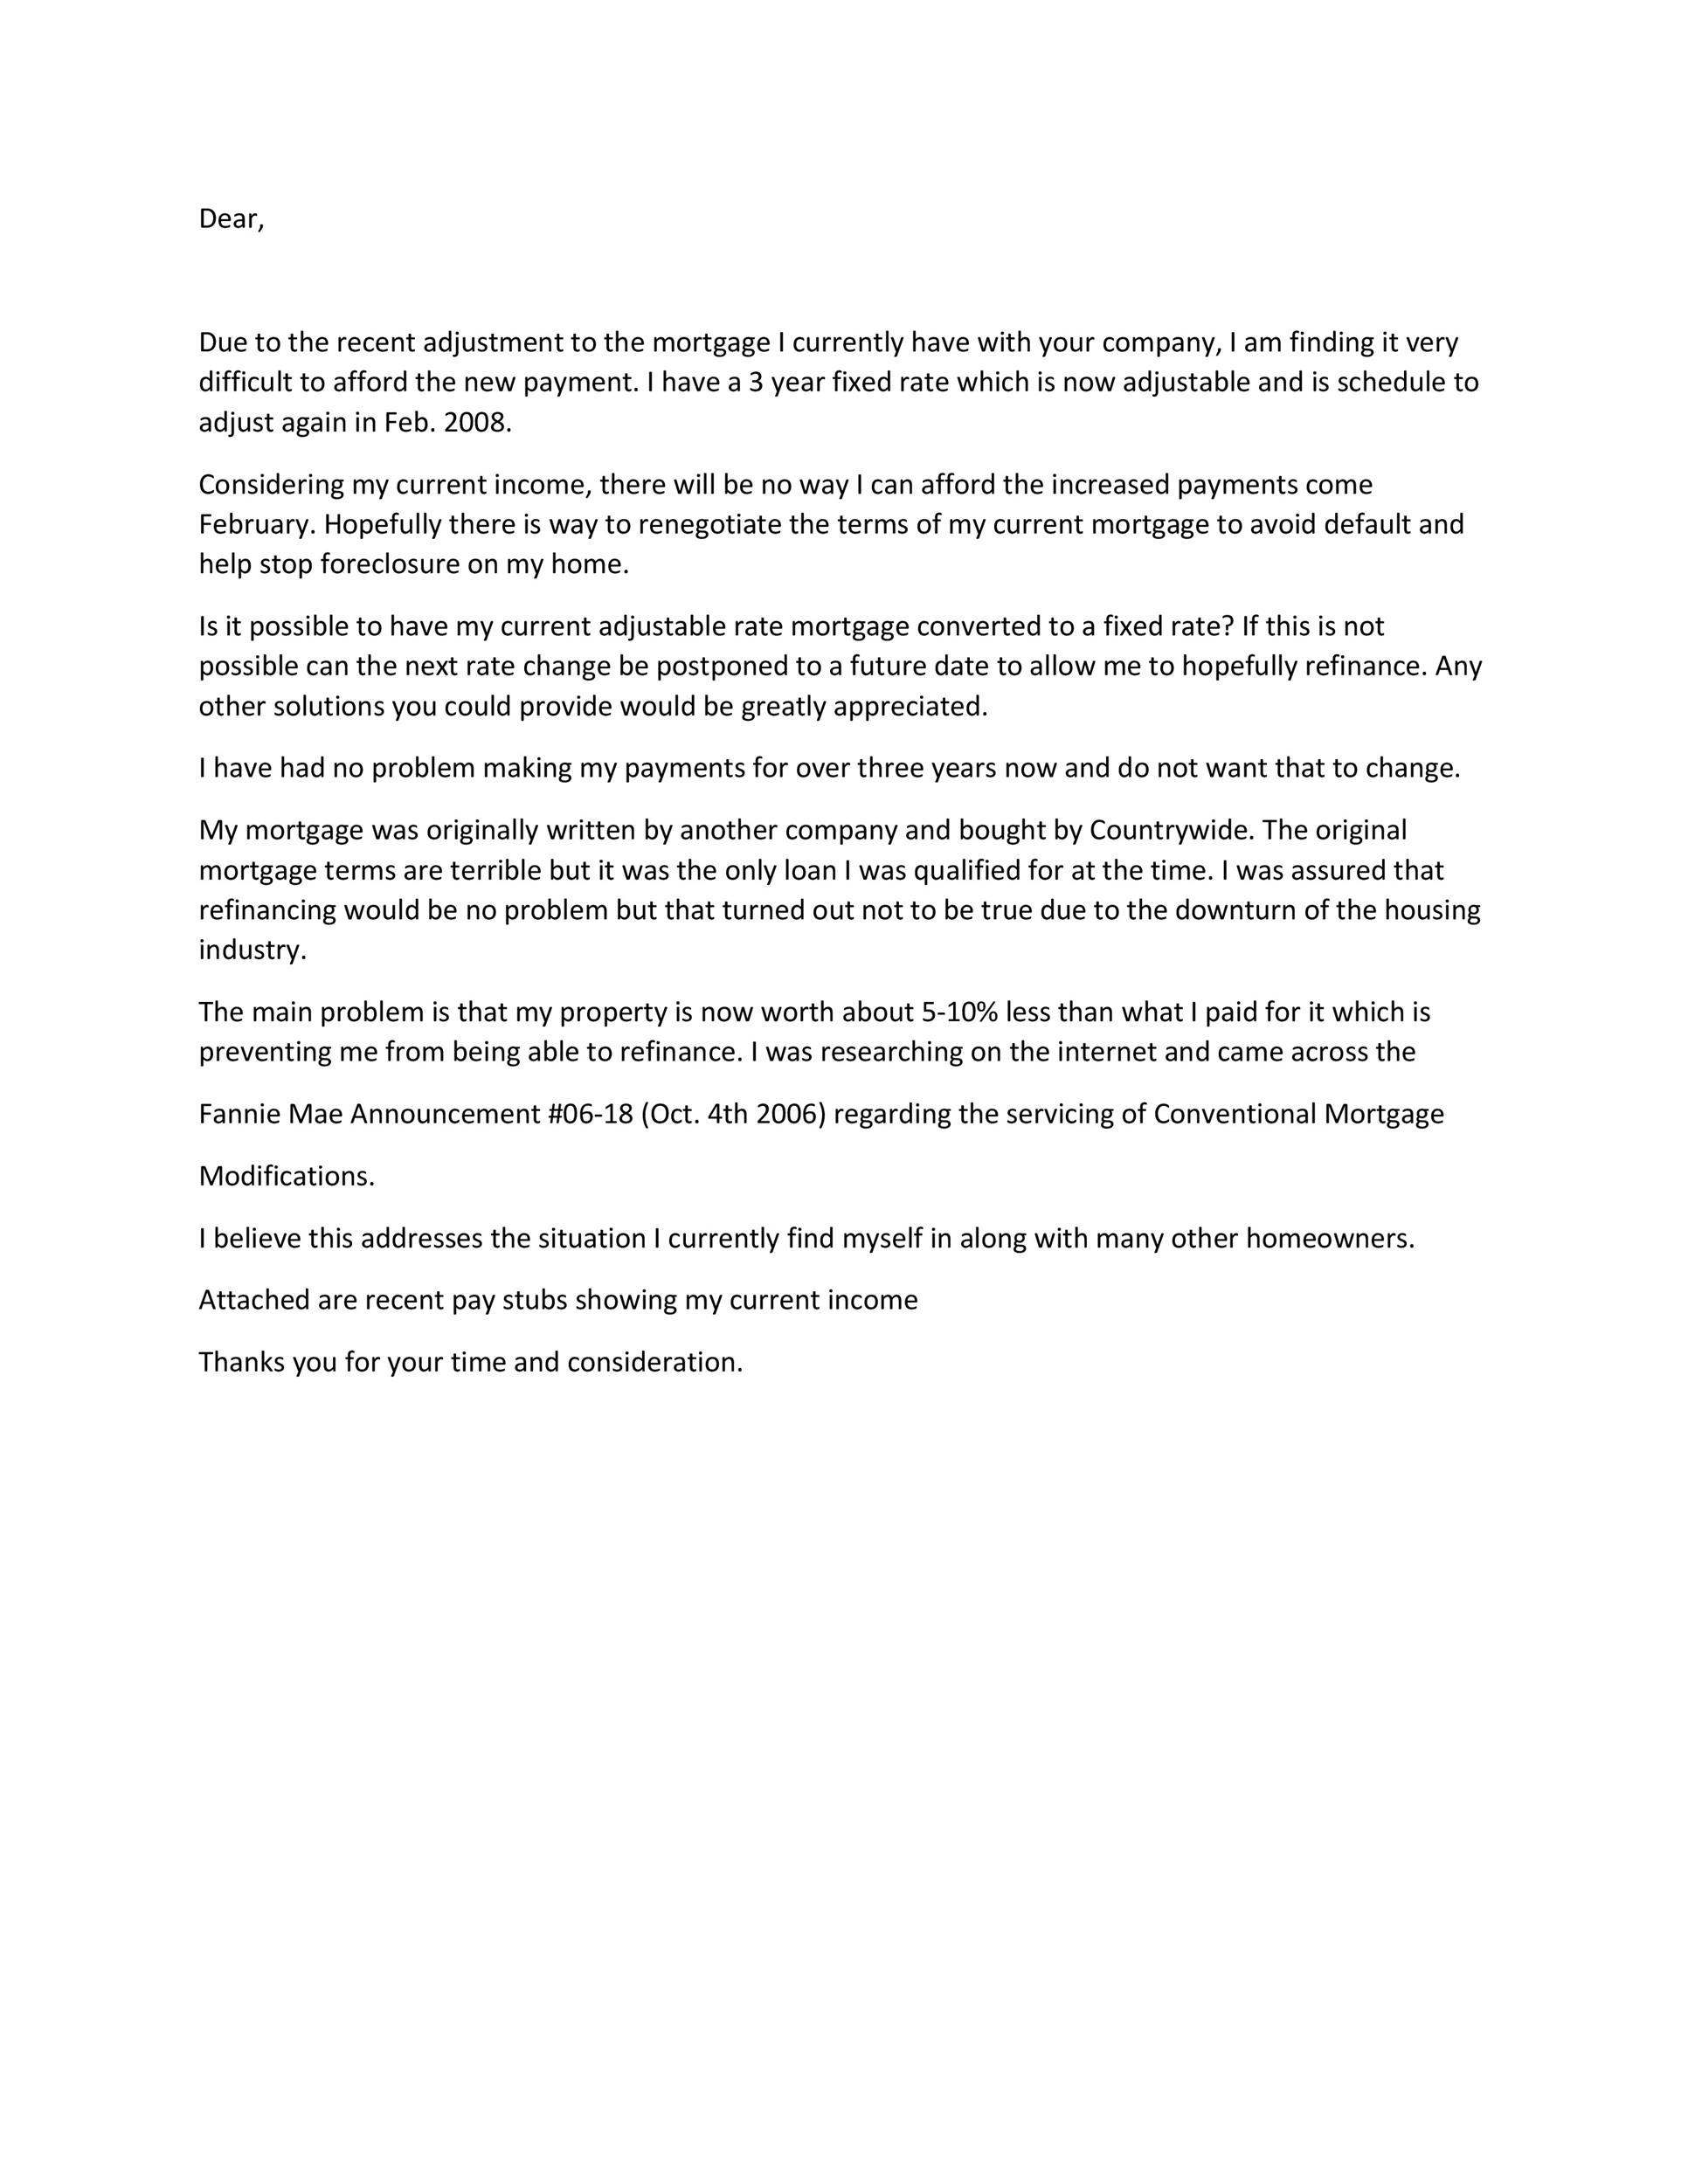 Hardship Letter For Mortgage from templatelab.com